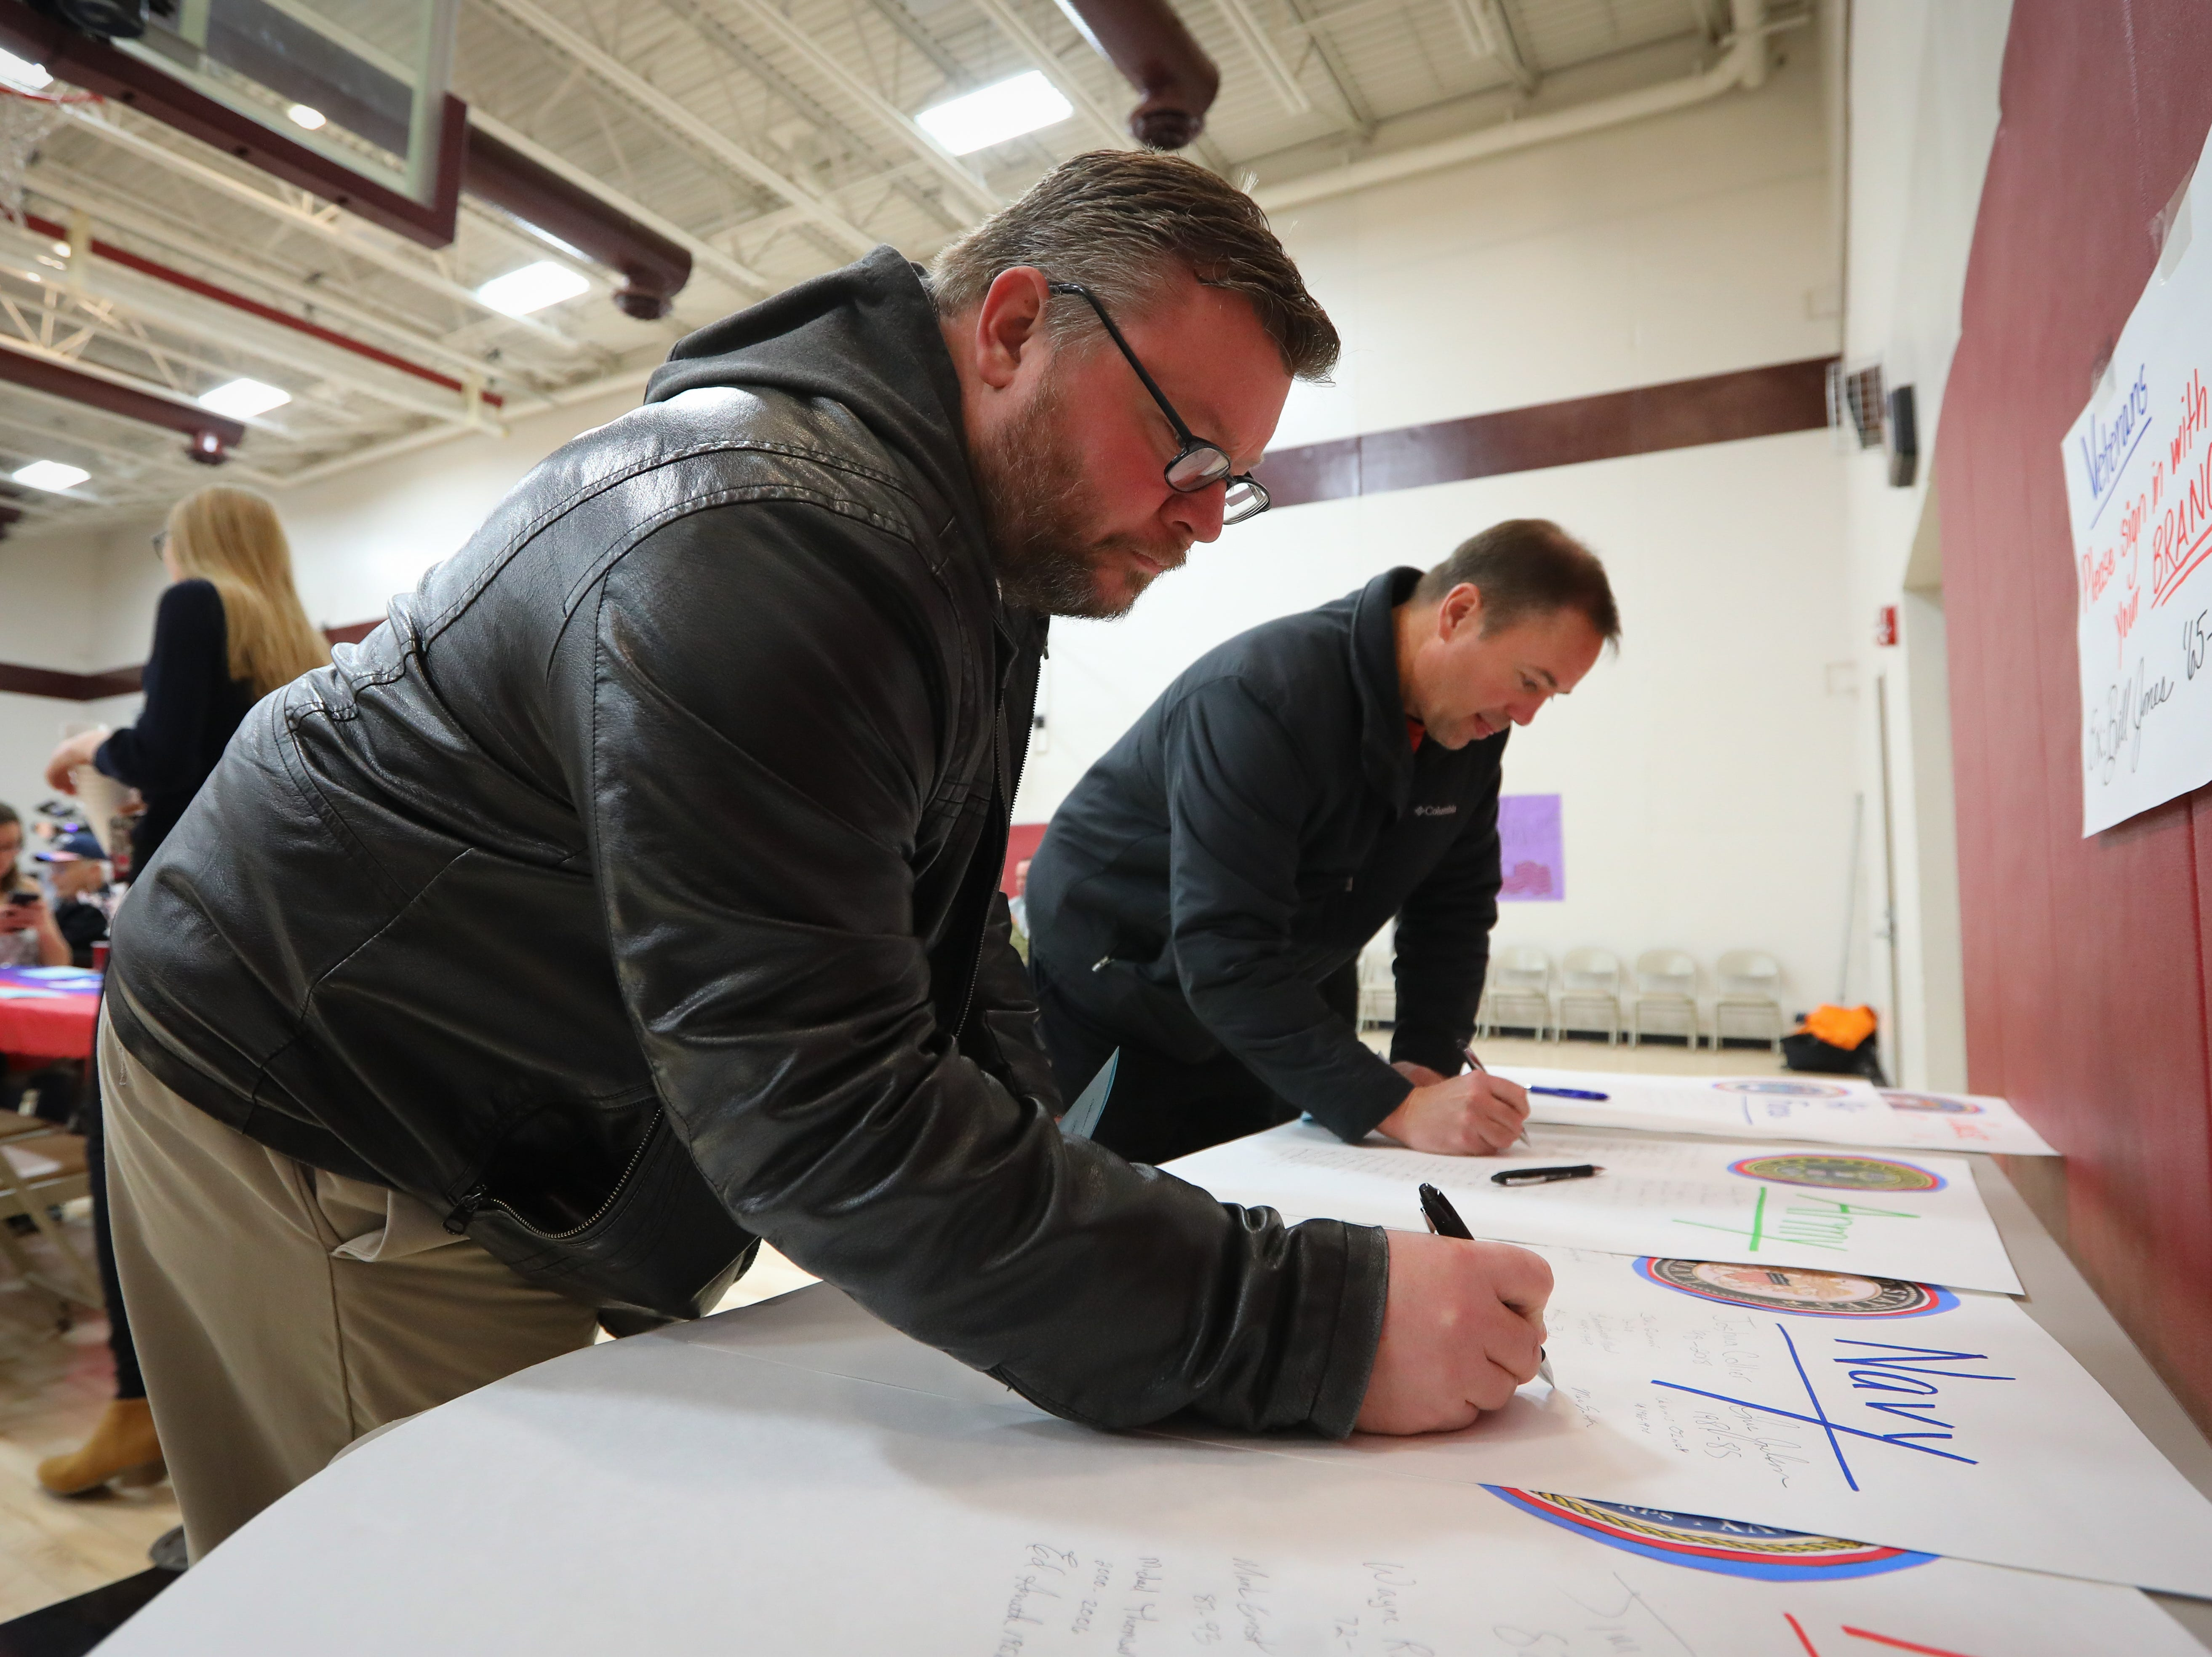 Marc Smith, a naval veteran, signs his name during Veterans Day Breakfast at Northview Middle School on Wednesday, Nov. 14, 2018 in Ankeny, Iowa.